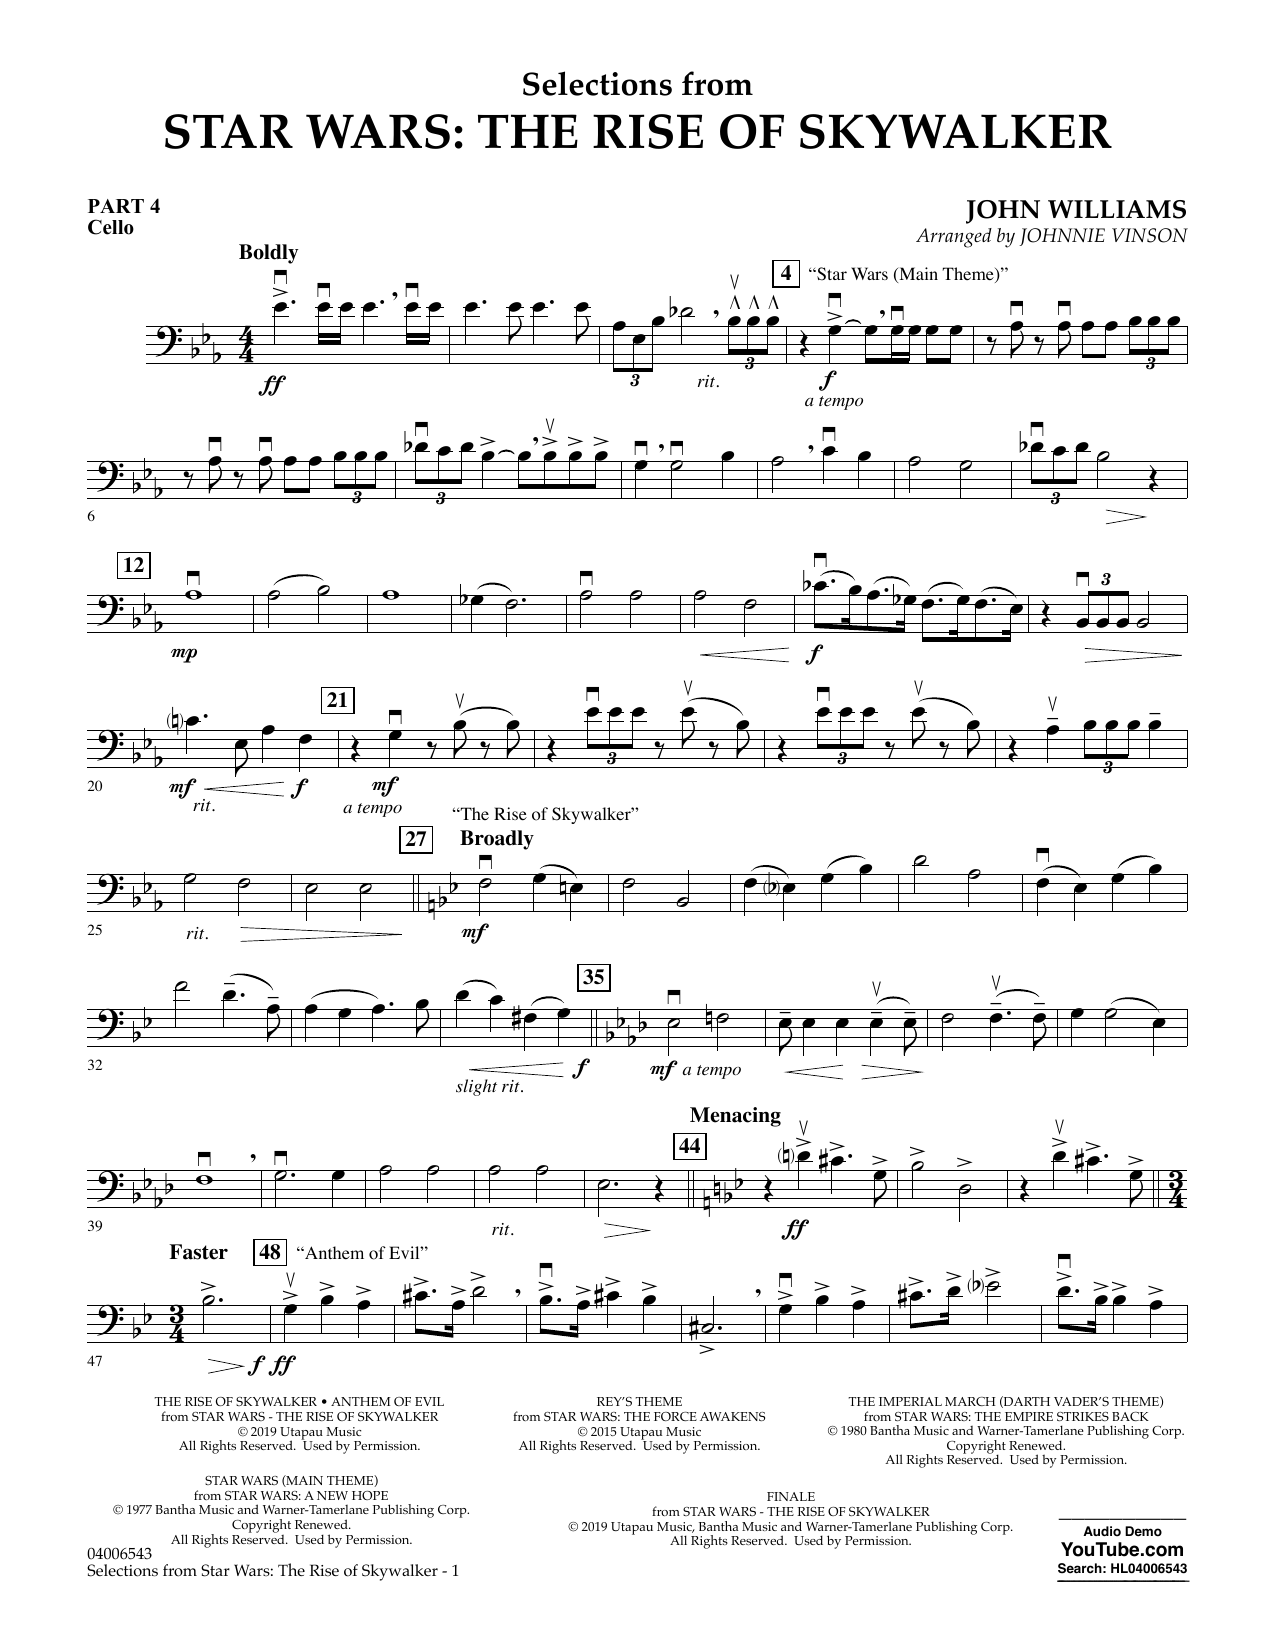 John Williams Selections from Star Wars: The Rise of Skywalker - Pt.4 - Cello sheet music notes and chords. Download Printable PDF.